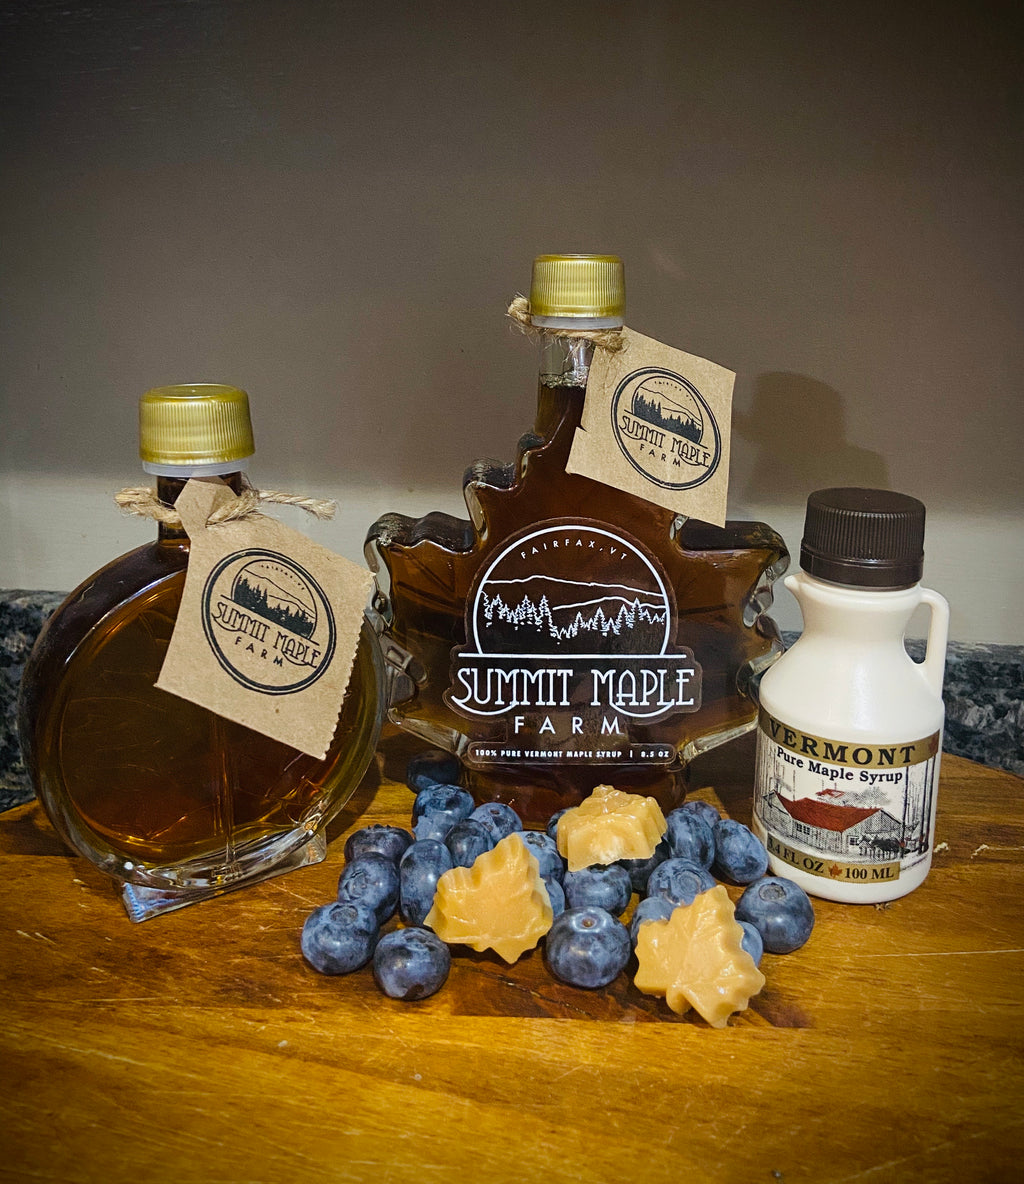 Blueberry infused Vermont Maple Syrup